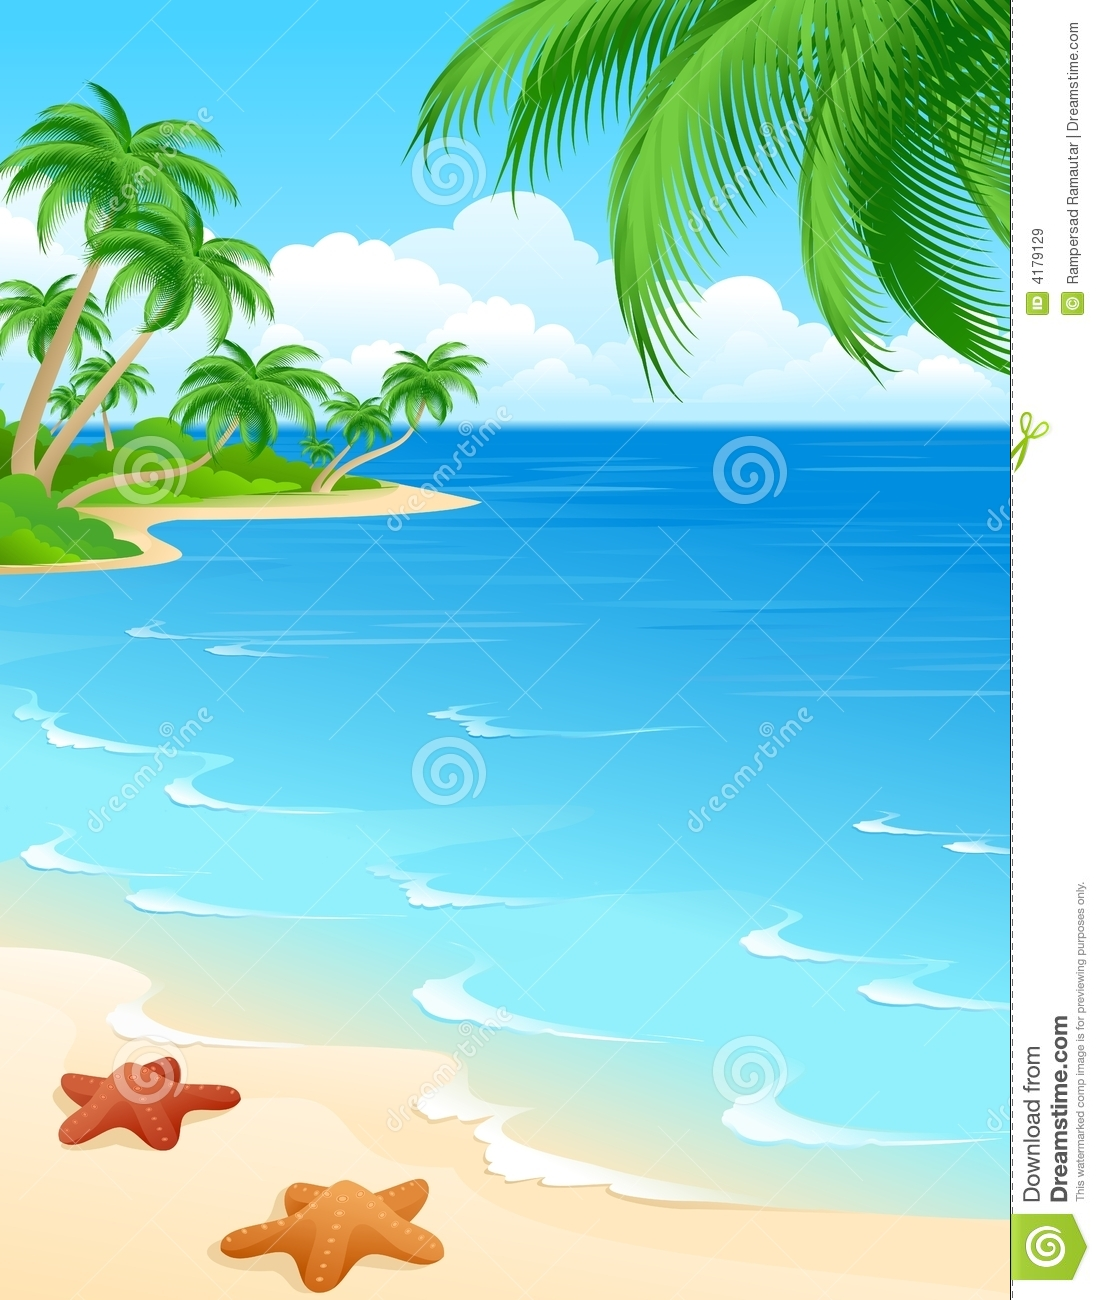 5 Images of Printable Beach Scene Clip Art